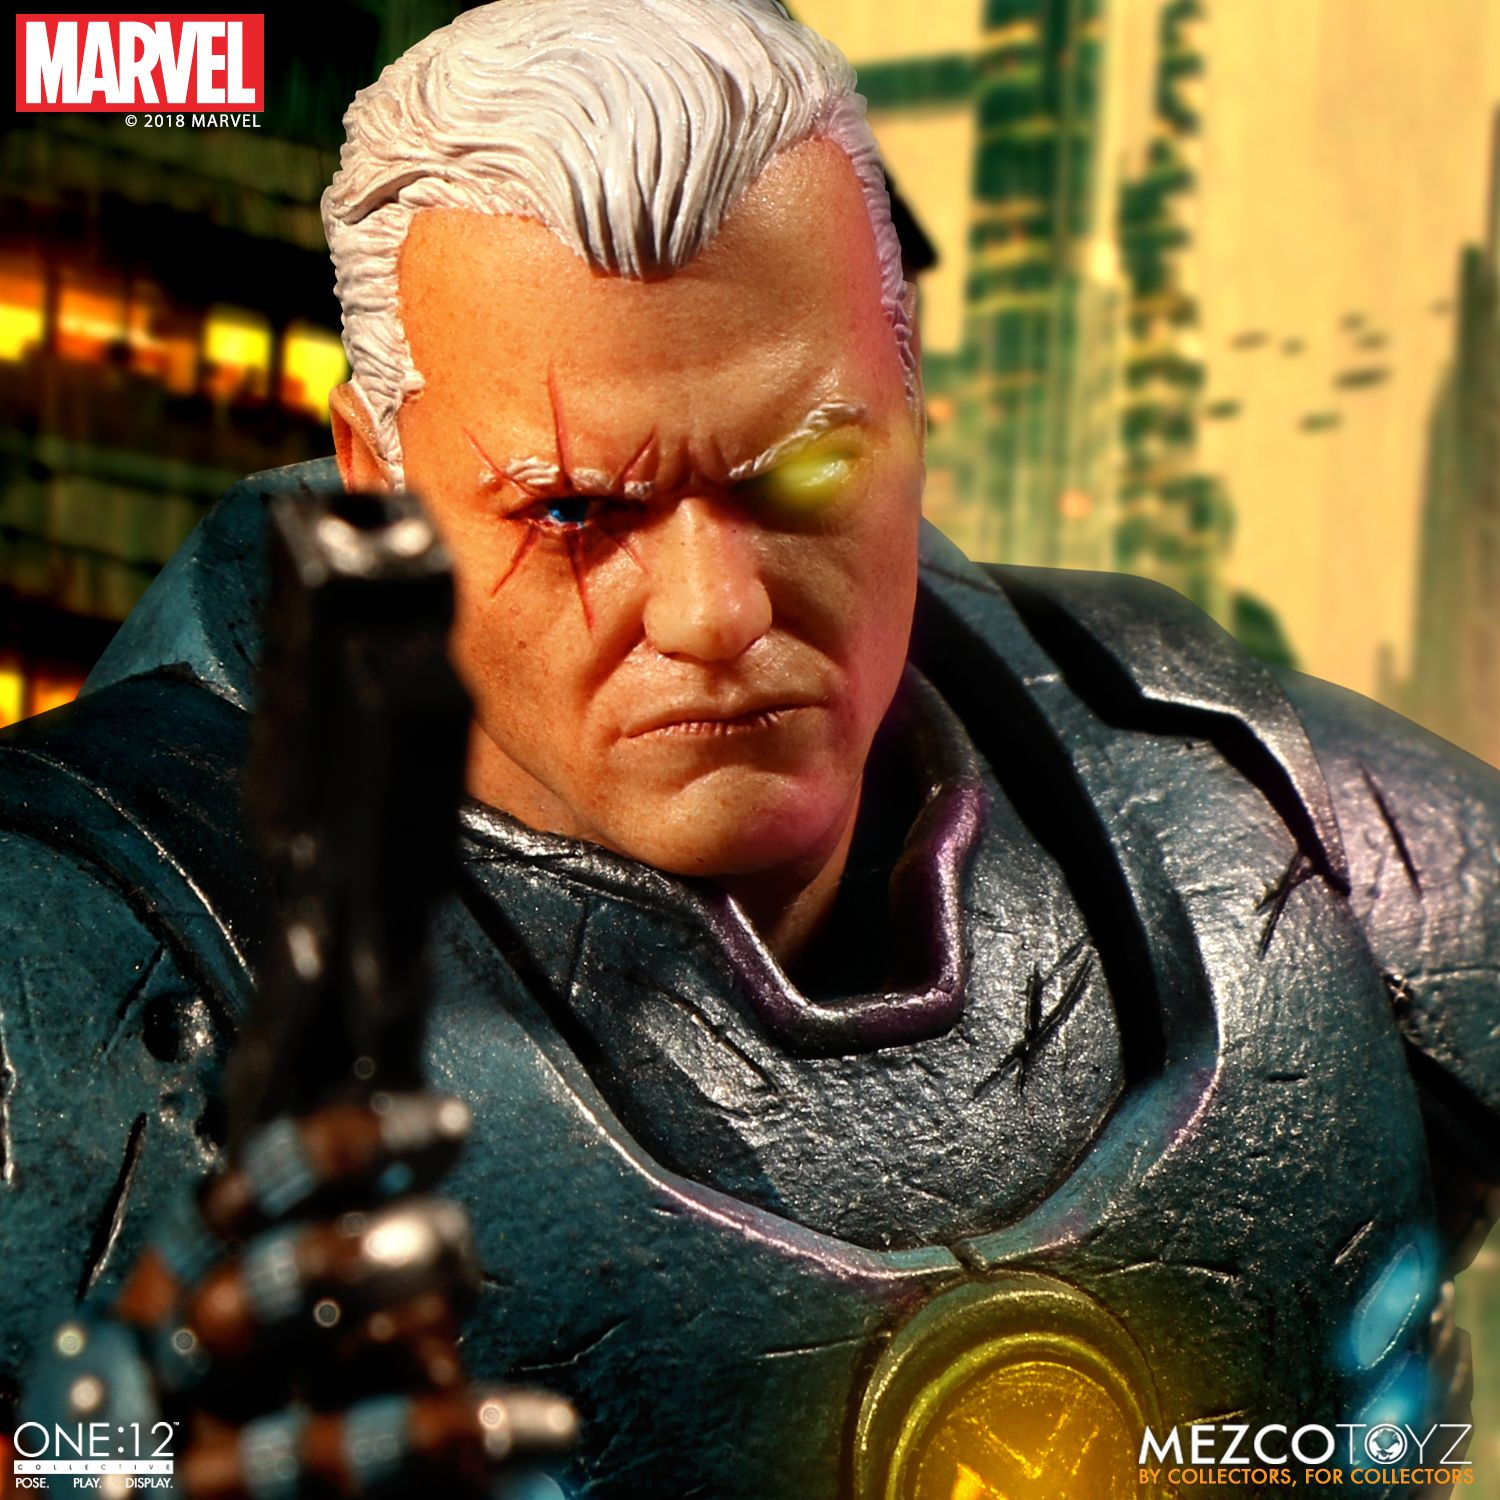 The One:12 Collective Cable figure from Mezco